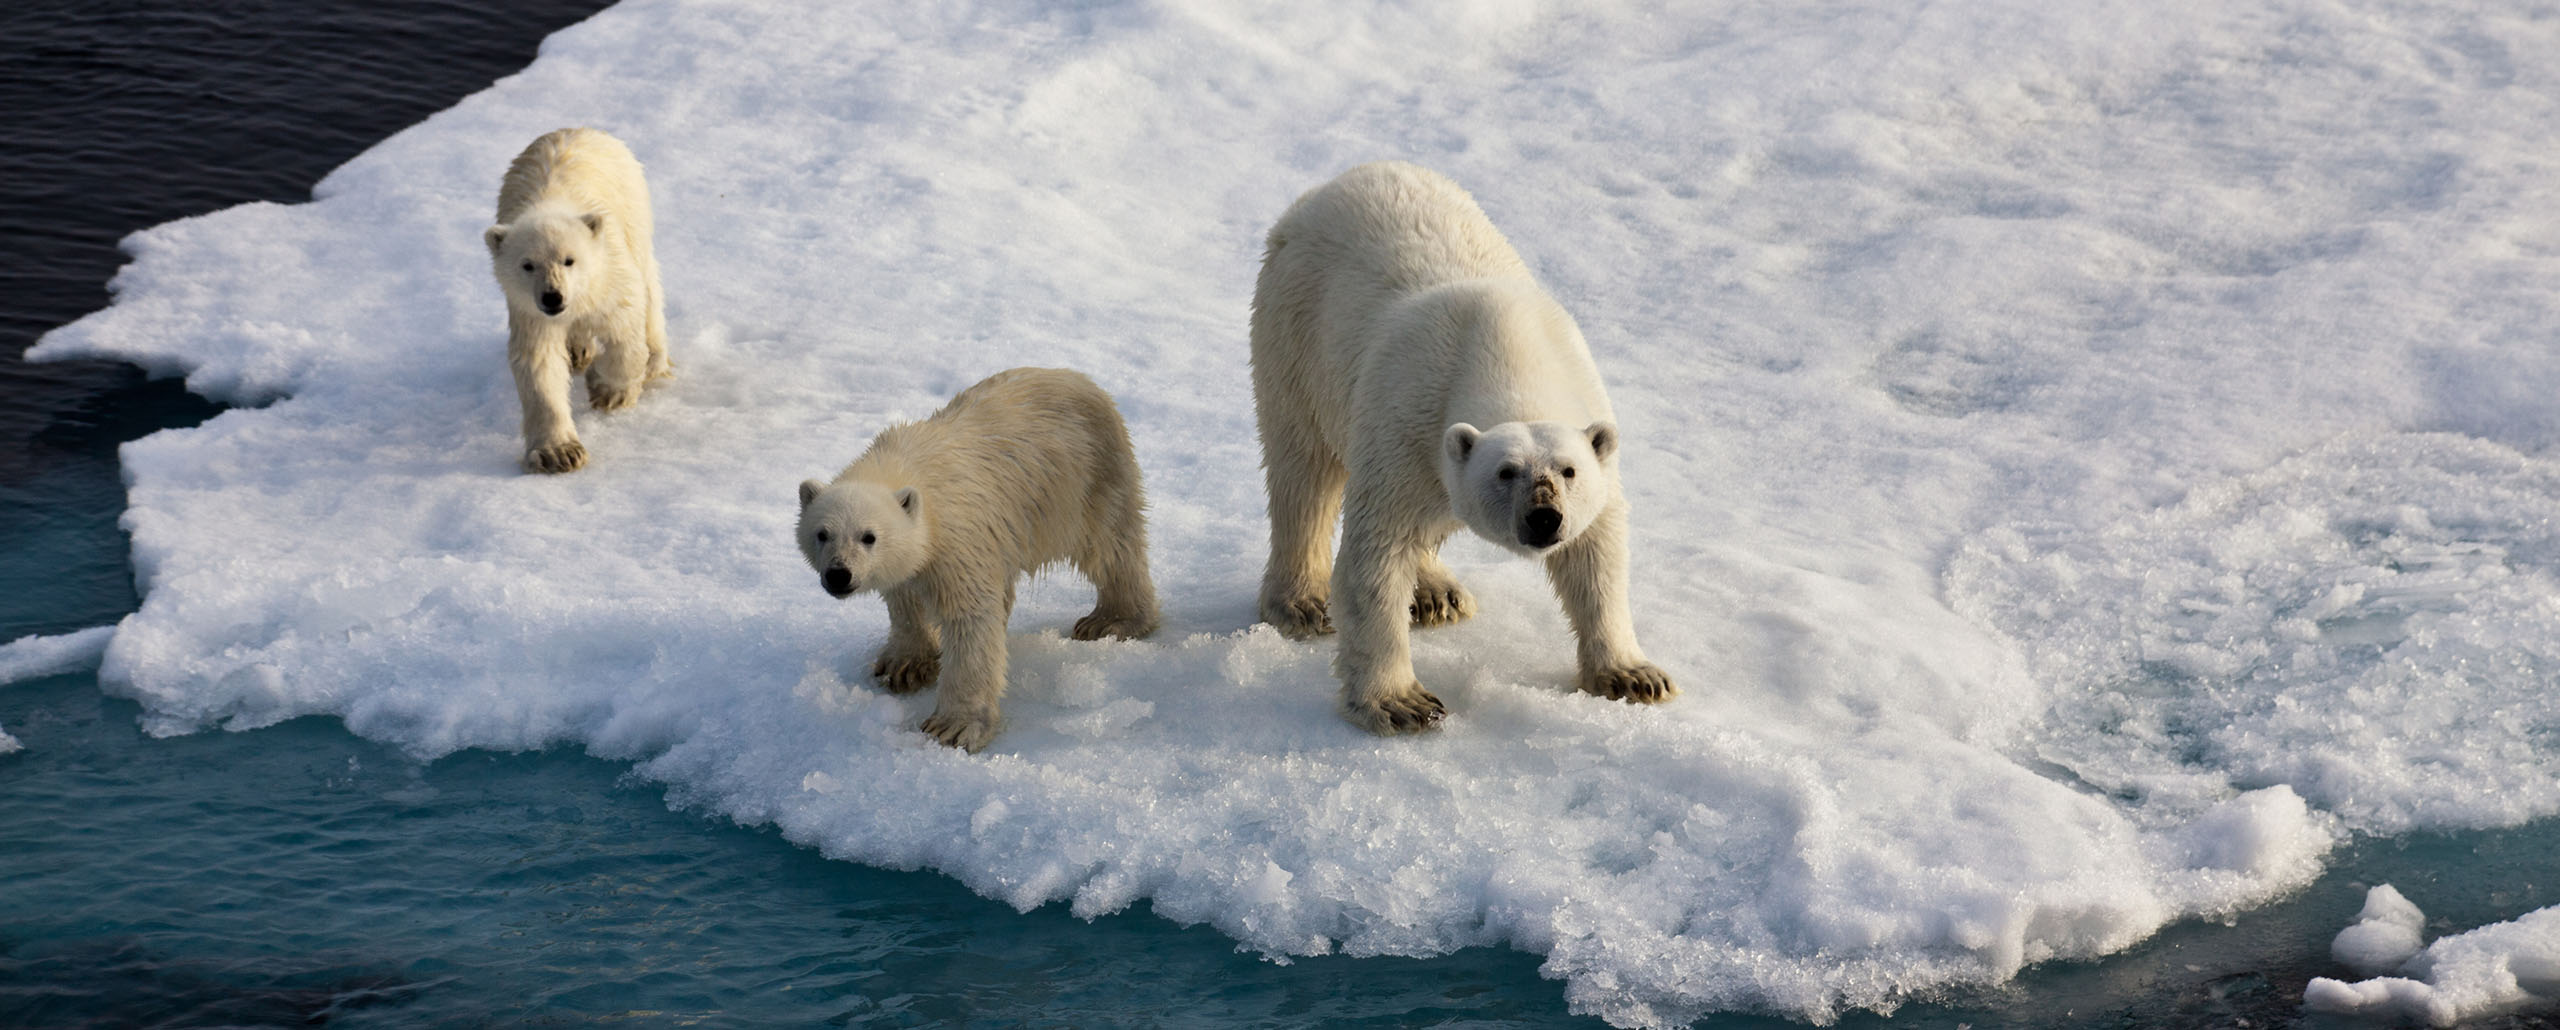 Encountering polar bears in the Arctic